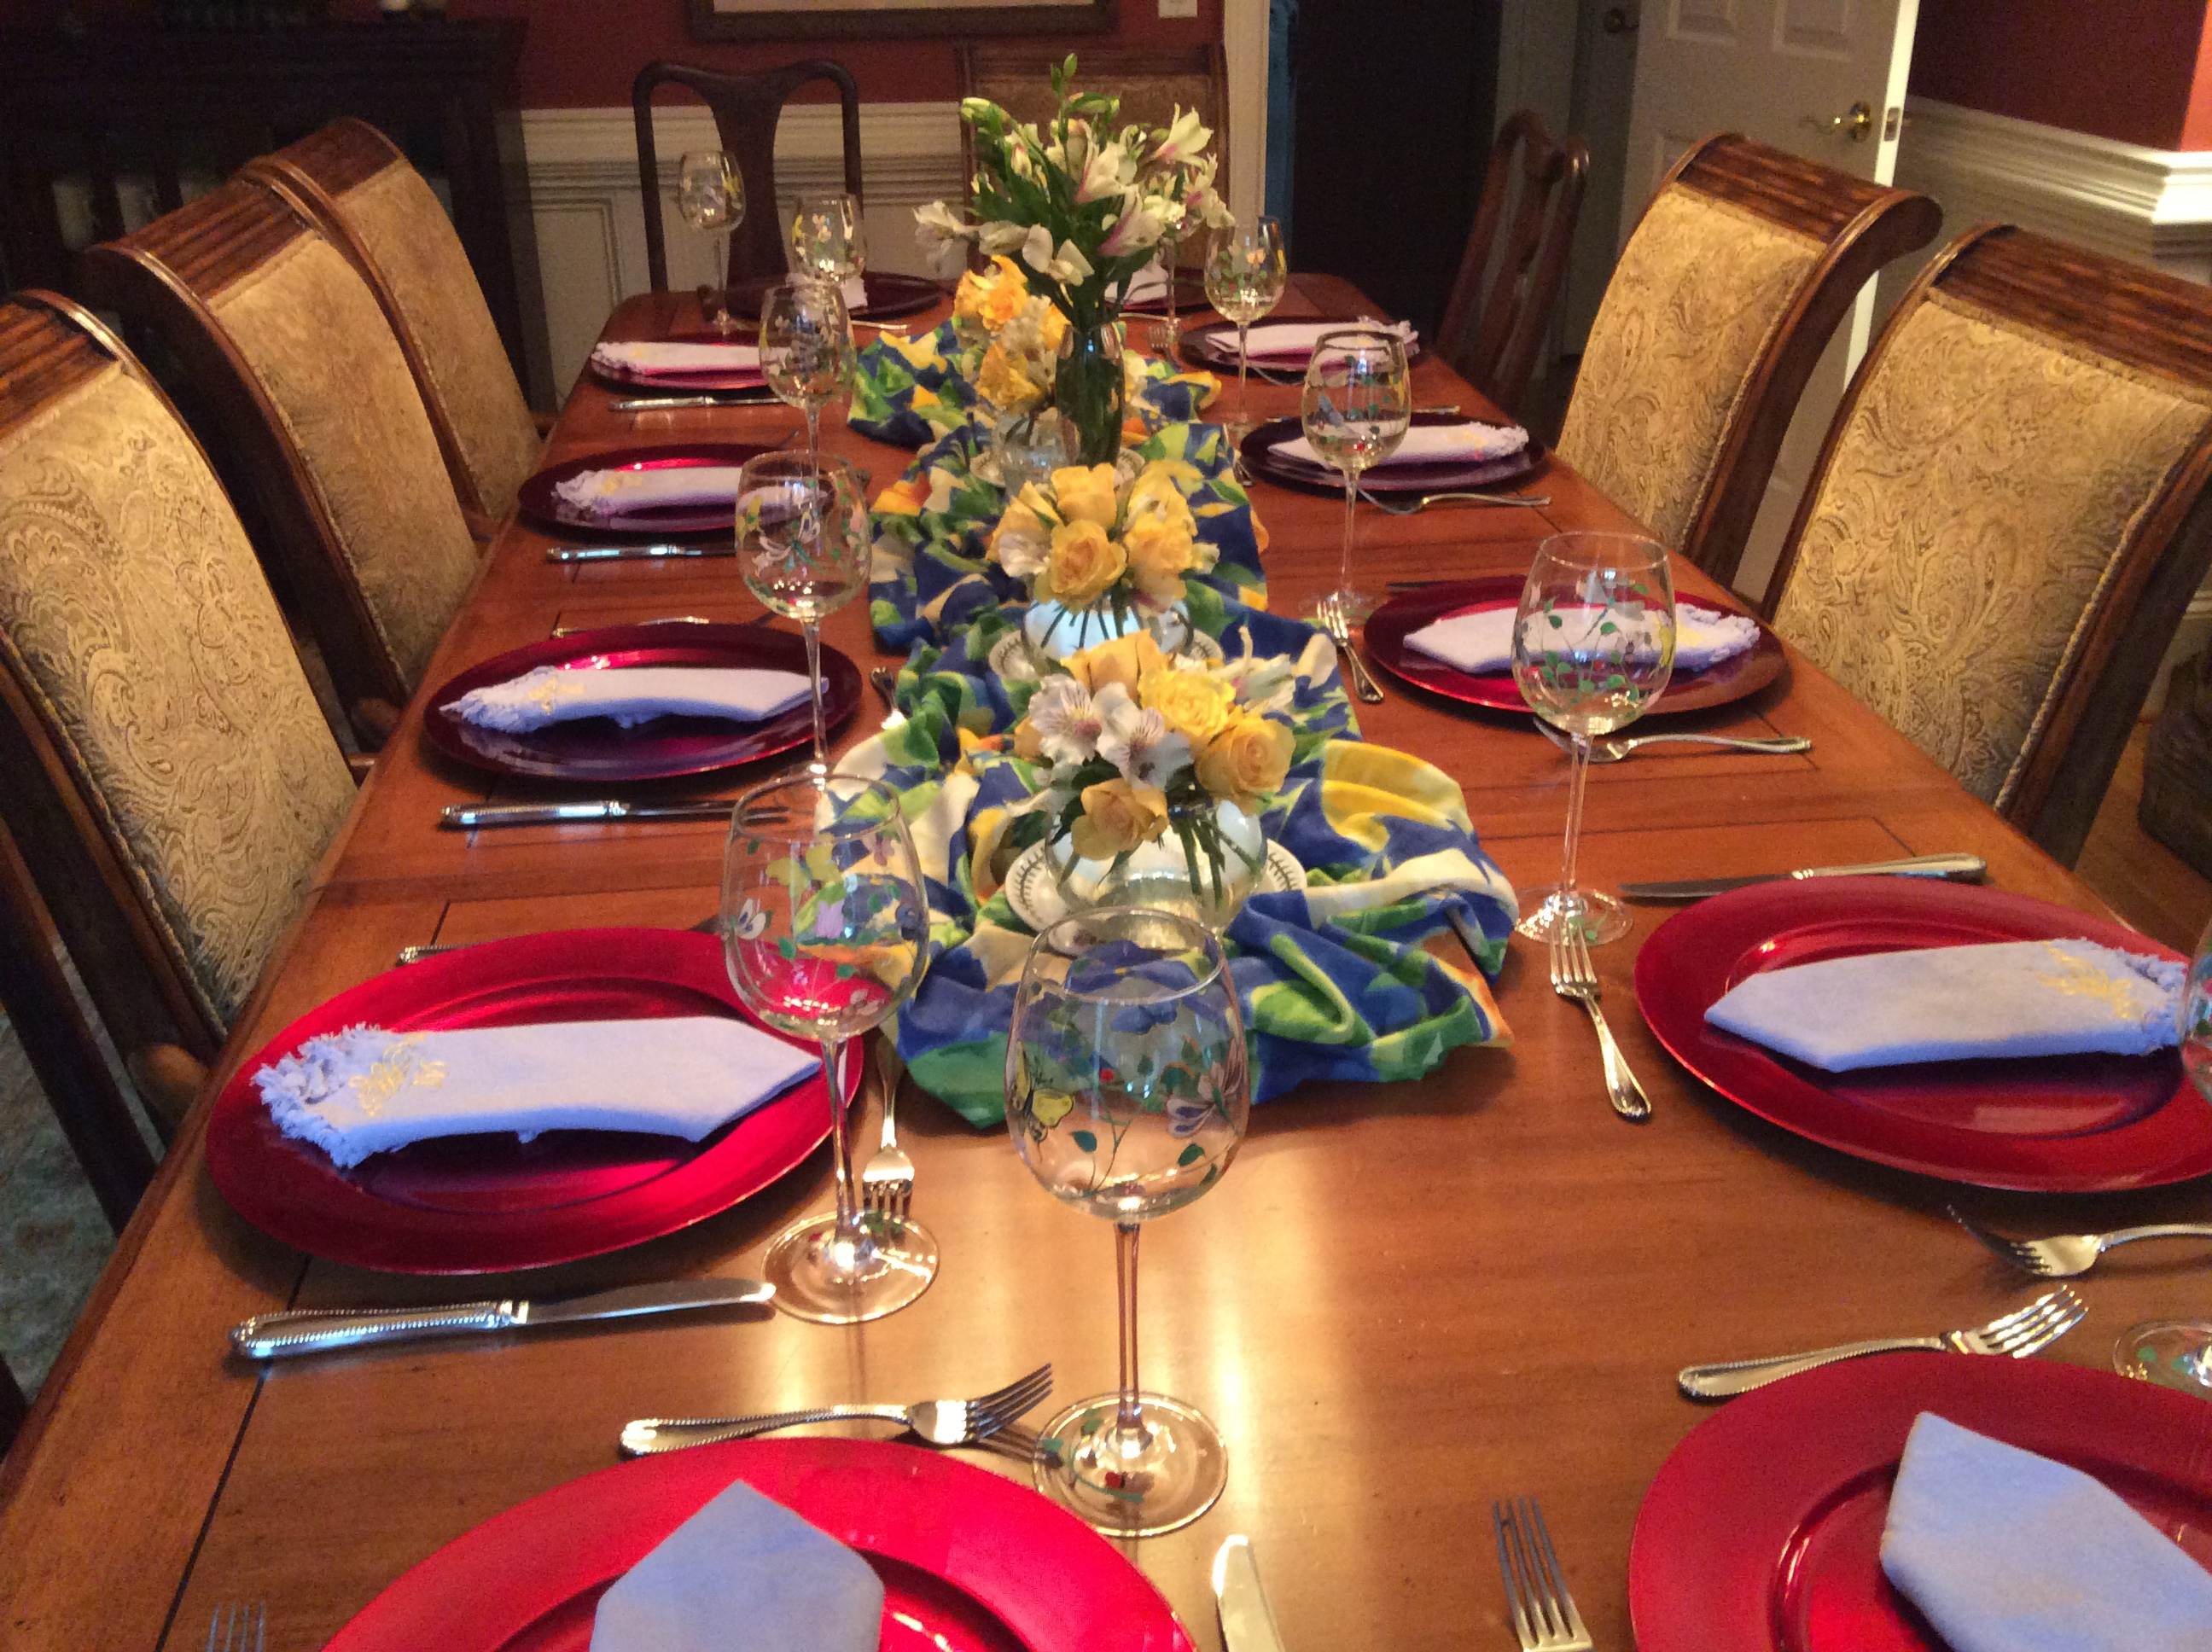 Set a pretty table with flowers and fabric down the middle.